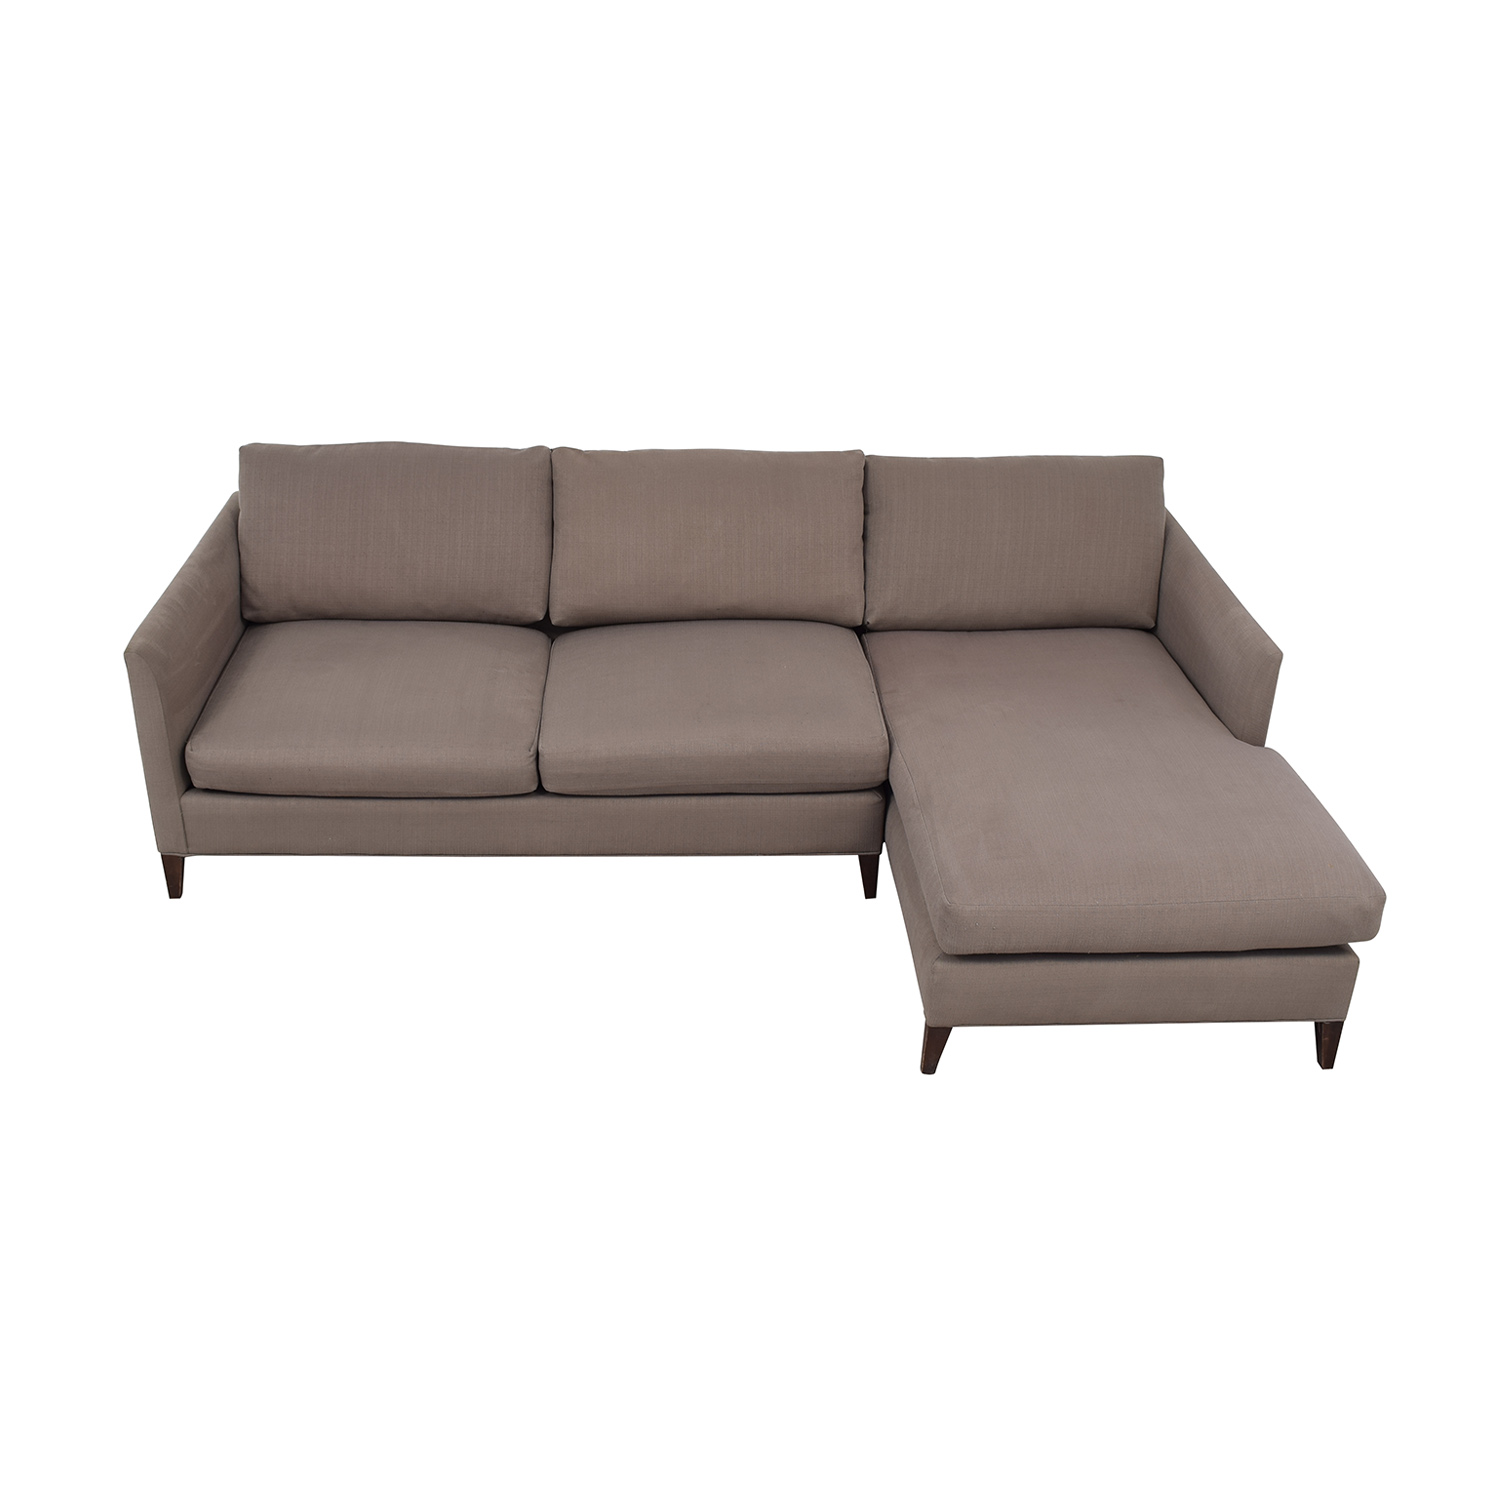 Crate & Barrel Crate & Barrel Grey Chaise Sectional Sectionals